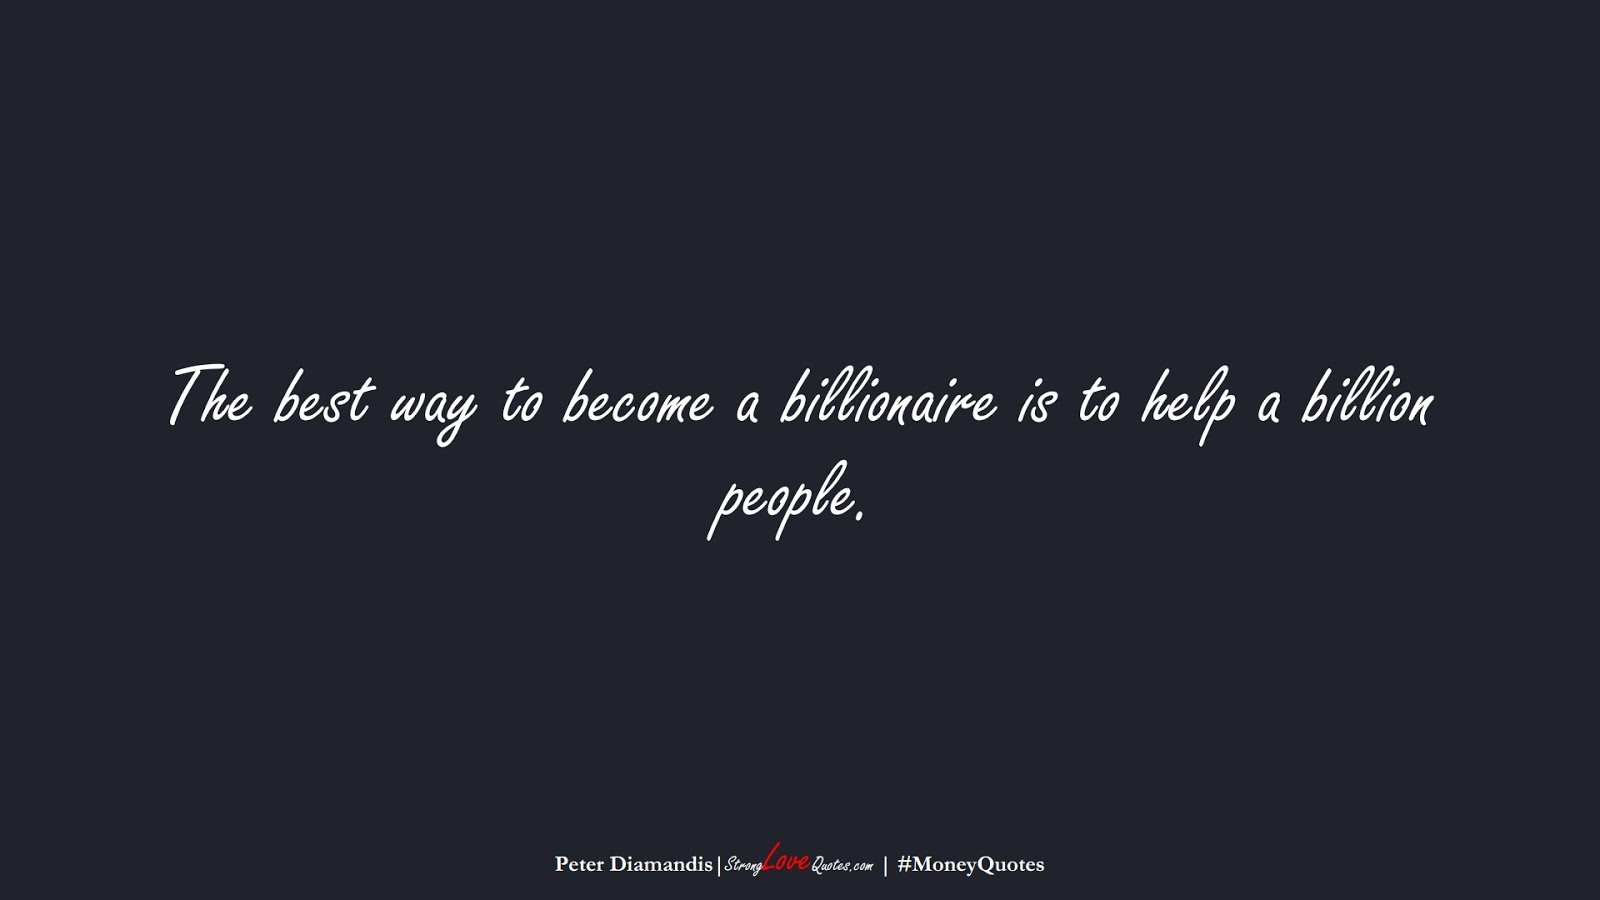 The best way to become a billionaire is to help a billion people. (Peter Diamandis);  #MoneyQuotes